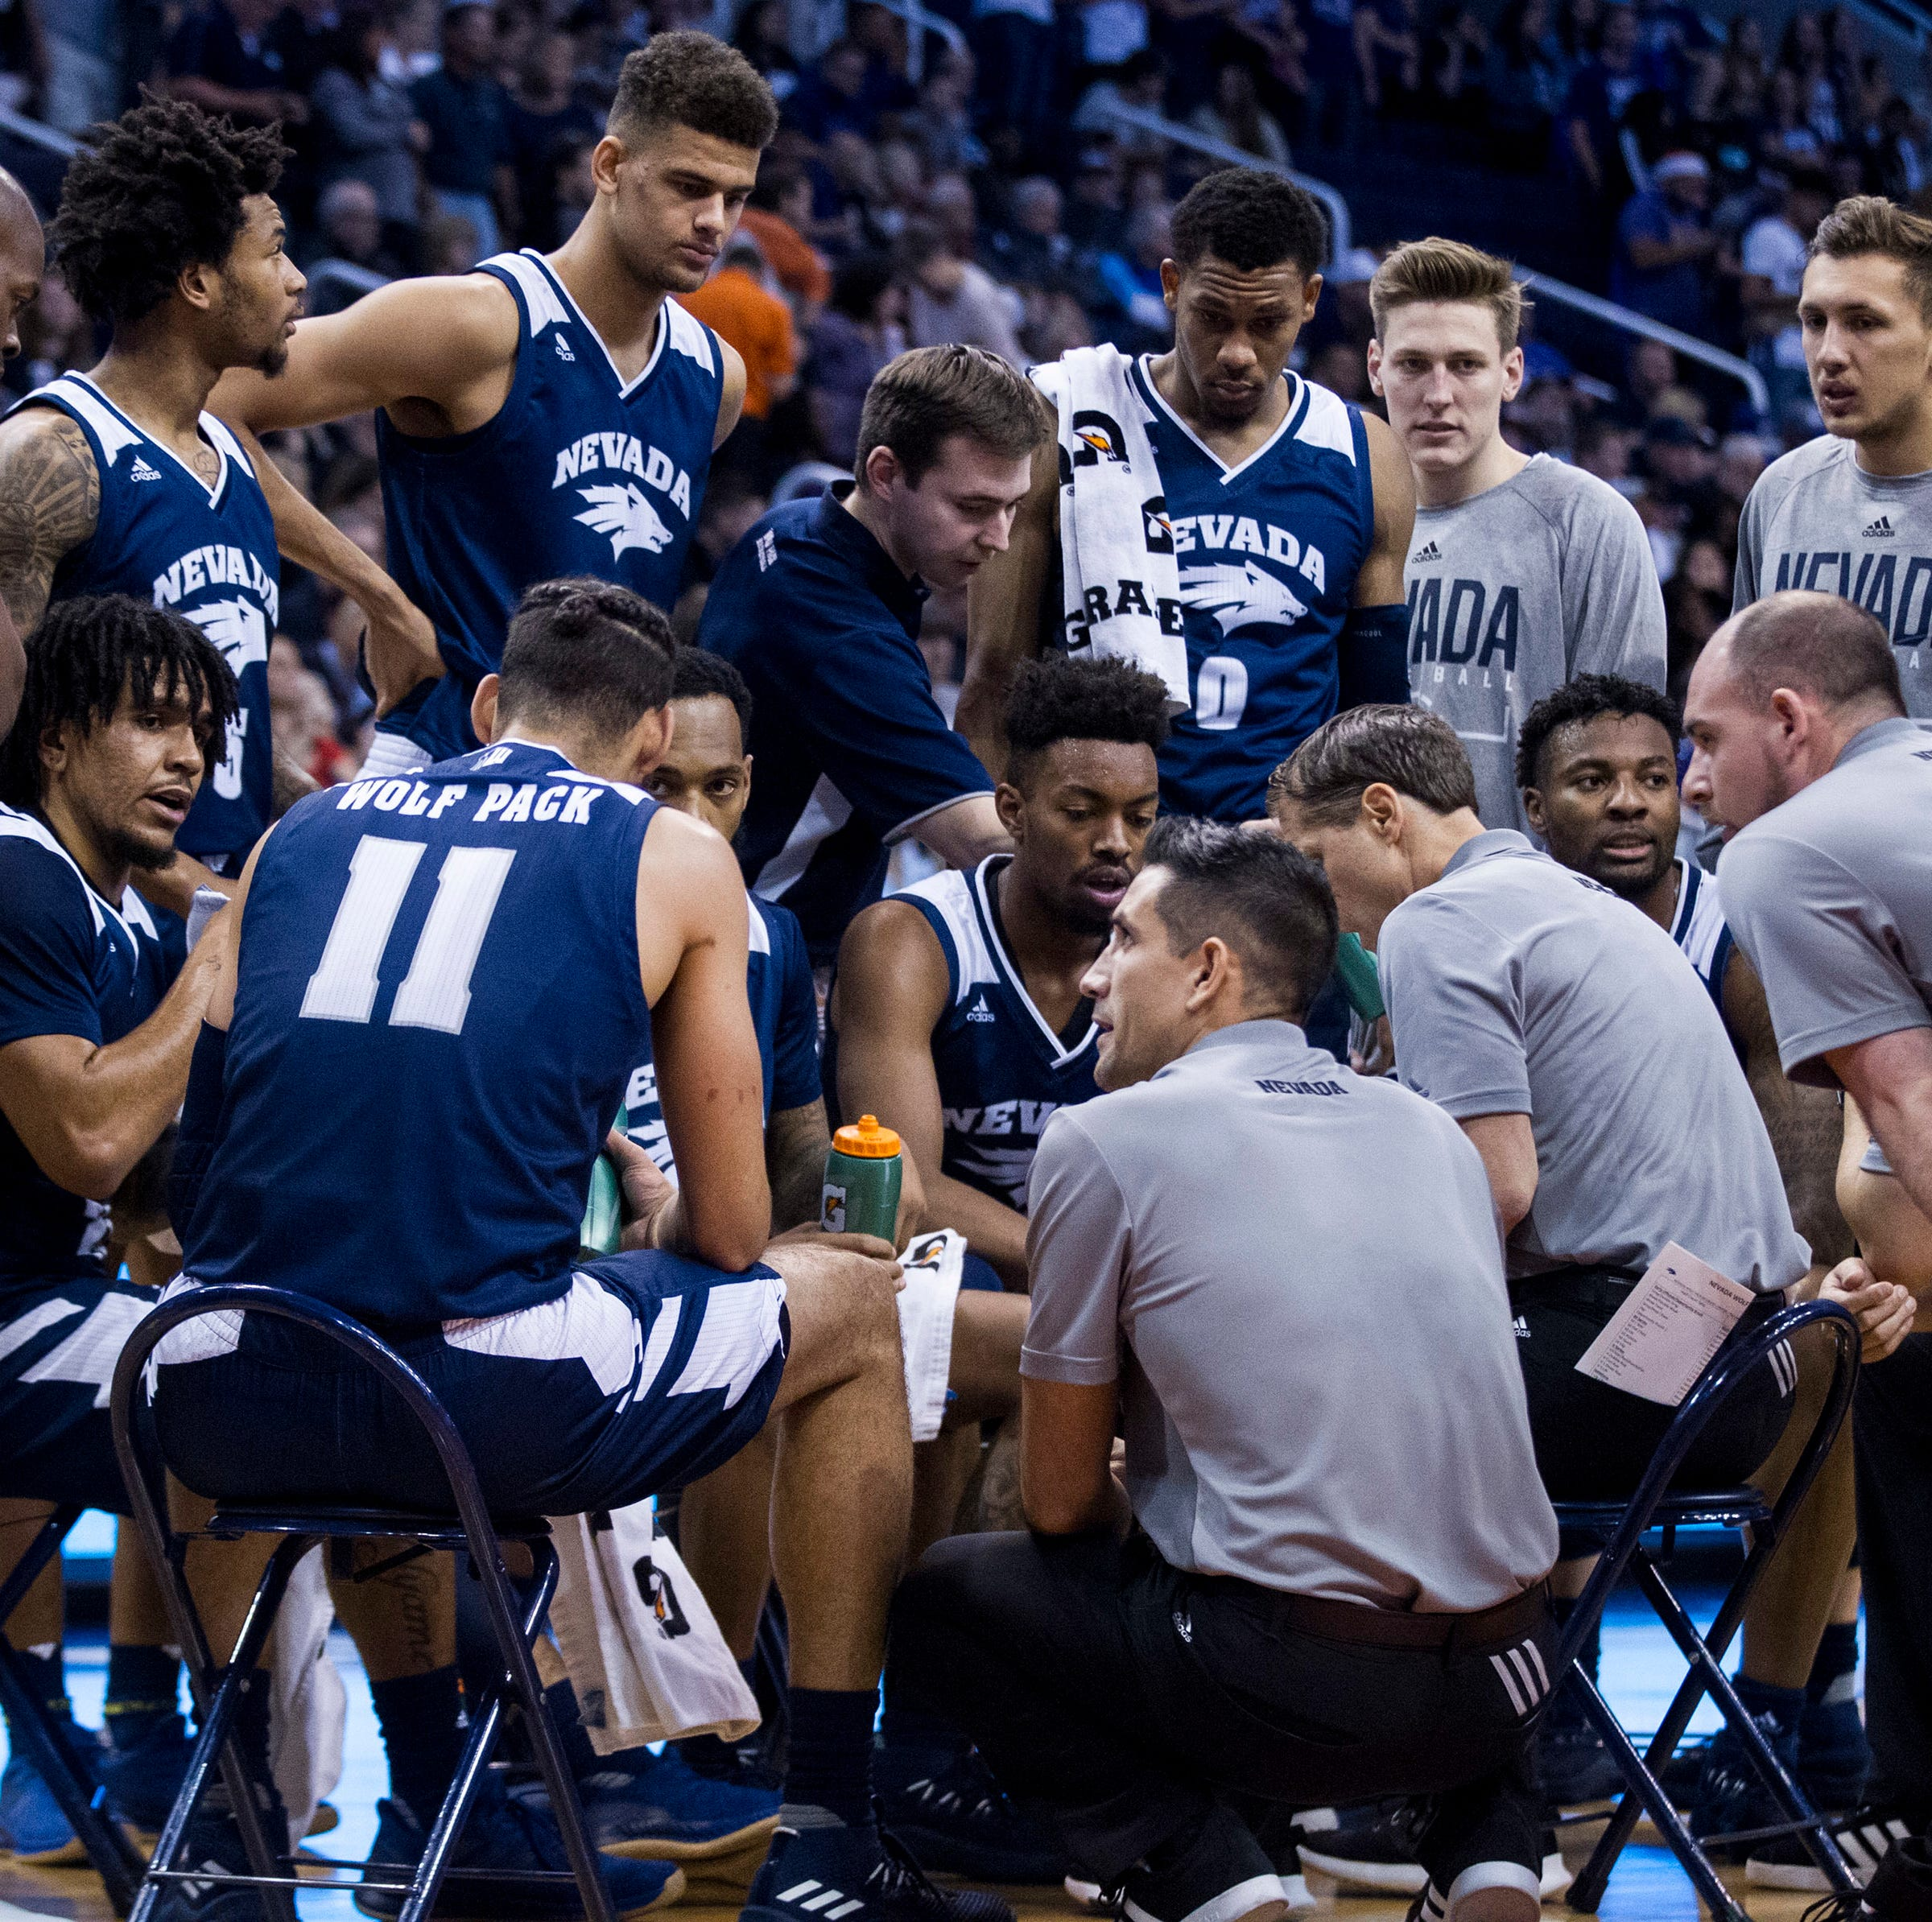 Nevada basketball wins twice, but drops to No. 7 in major polls